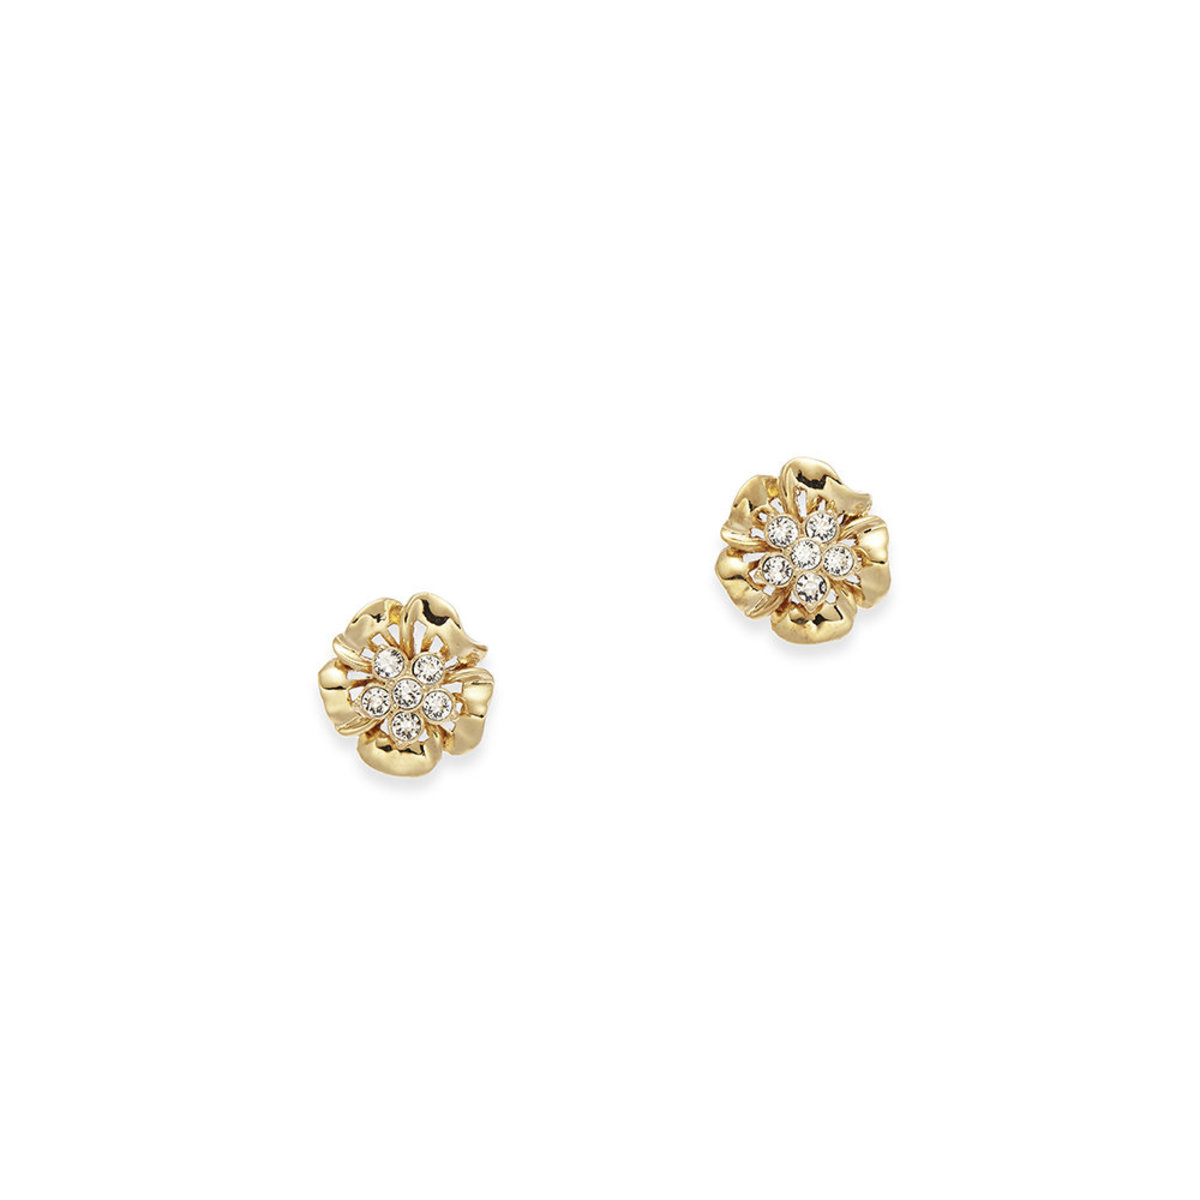 Lush Blossom: gold plating, Swarovski crystal, flower clip earrings